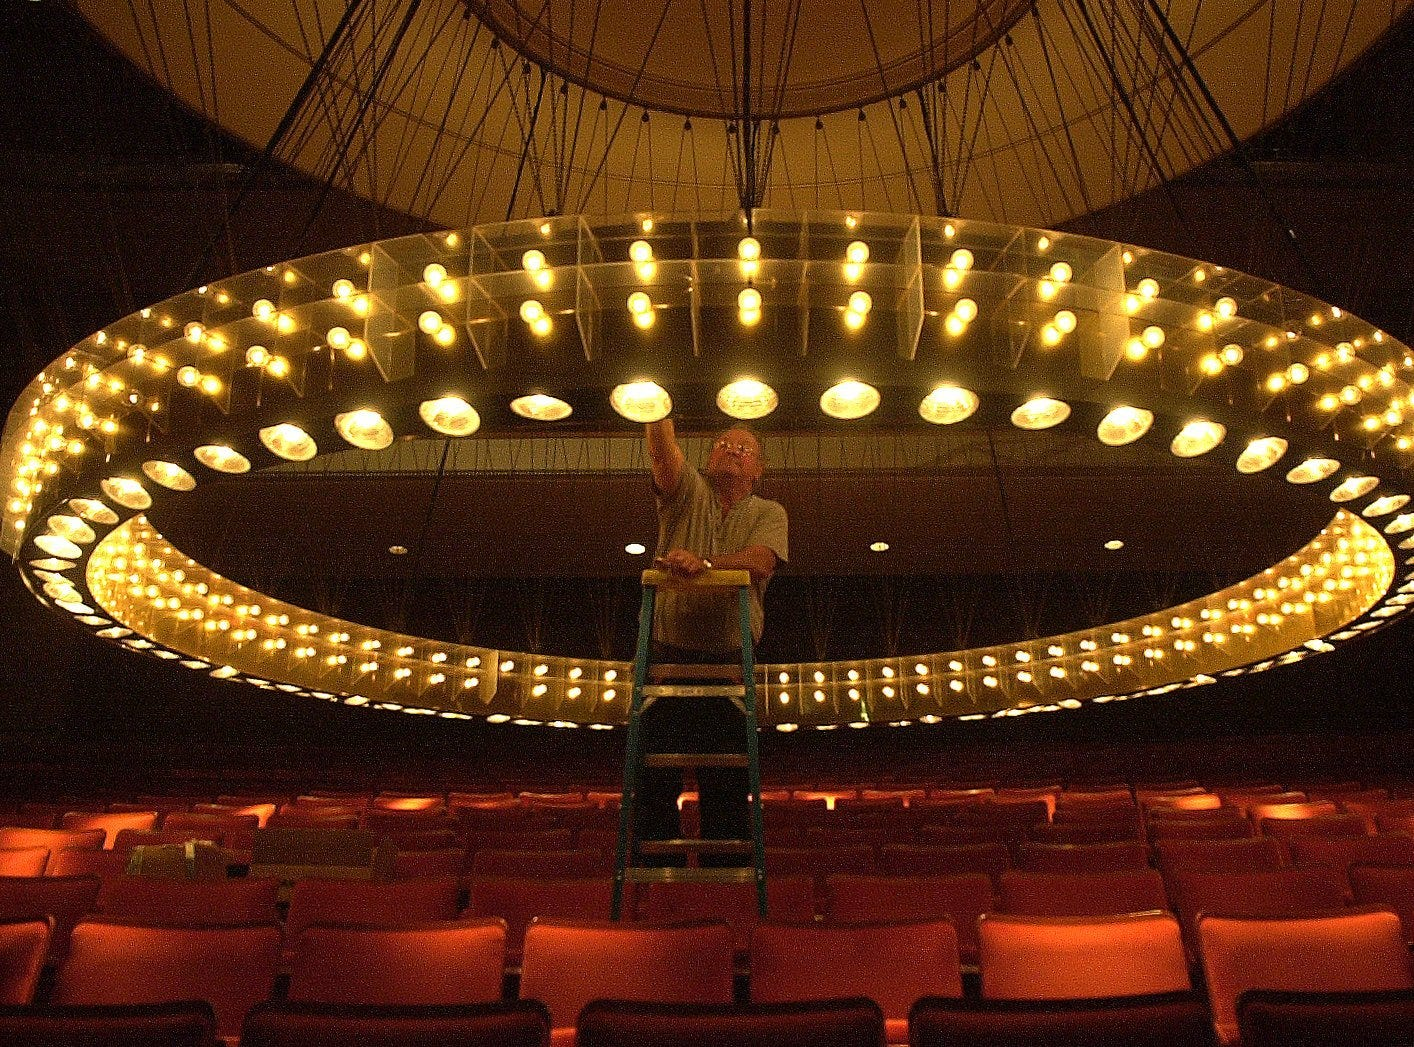 PIPES, NWS, JACK ORTON, 2 OF 2 - Bob Gaeger, stage hand at the Marcus Center for the Performing Arts in Milwaukee, WI., changes one of the roughly 350 light blubs on the 12,000 pound chandelier that hang in the center's Uihlein Hall Thursday, Aug. 16, 2001.